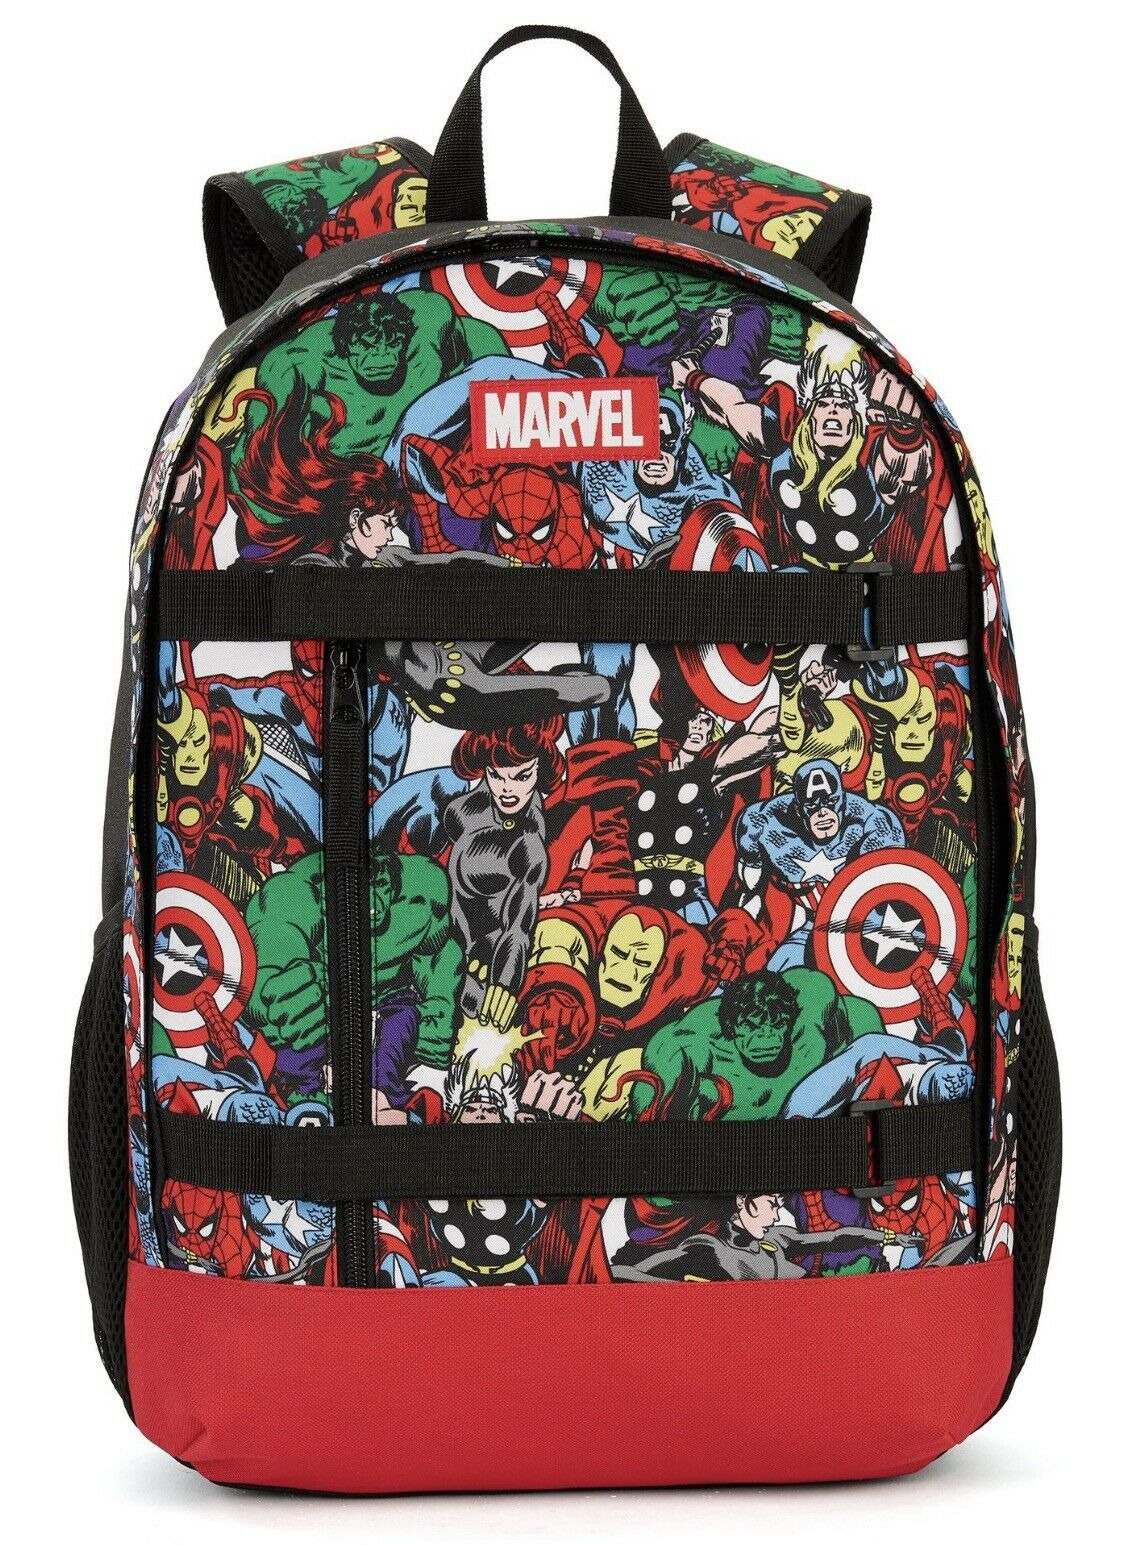 💥 Marvel Avengers Colorful & Cool Comic Backpack by Bioworld Back to School